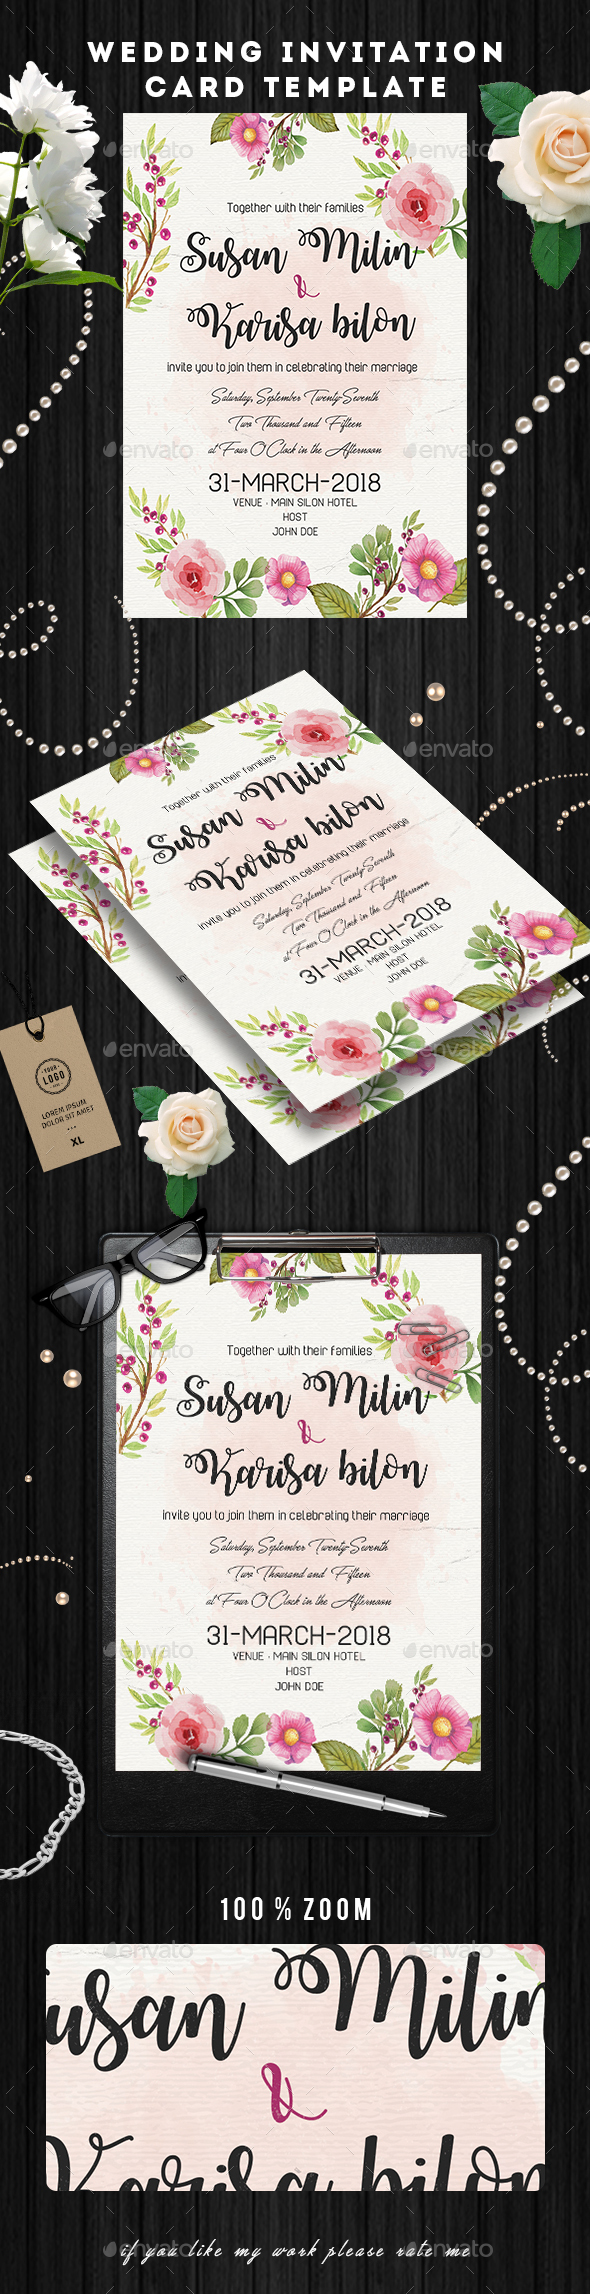 Wedding Invitation Card Flyer - Commerce Flyers